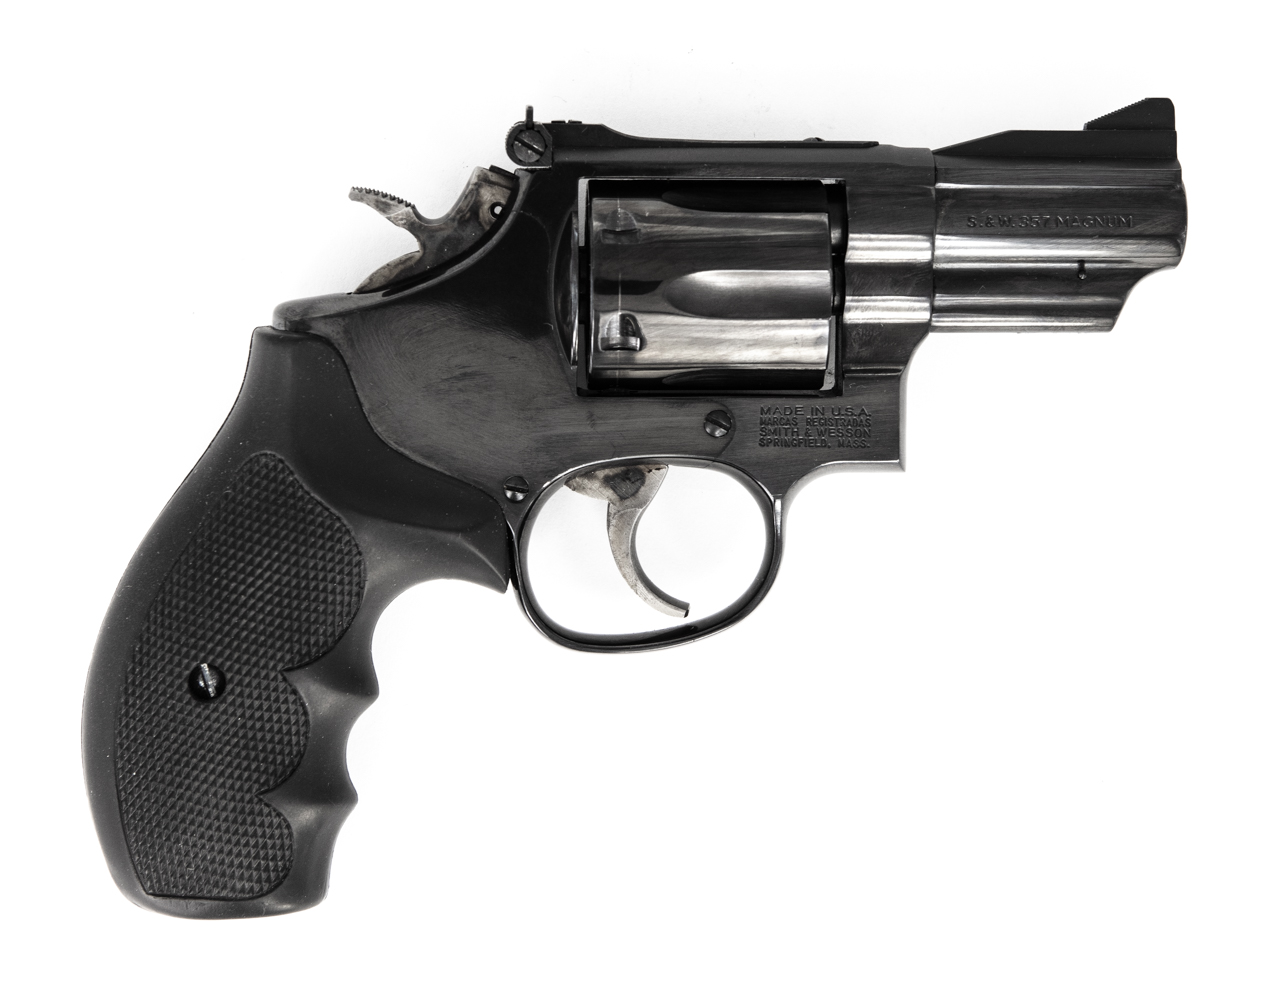 Smith & Wesson 19-7 .357Mag Re